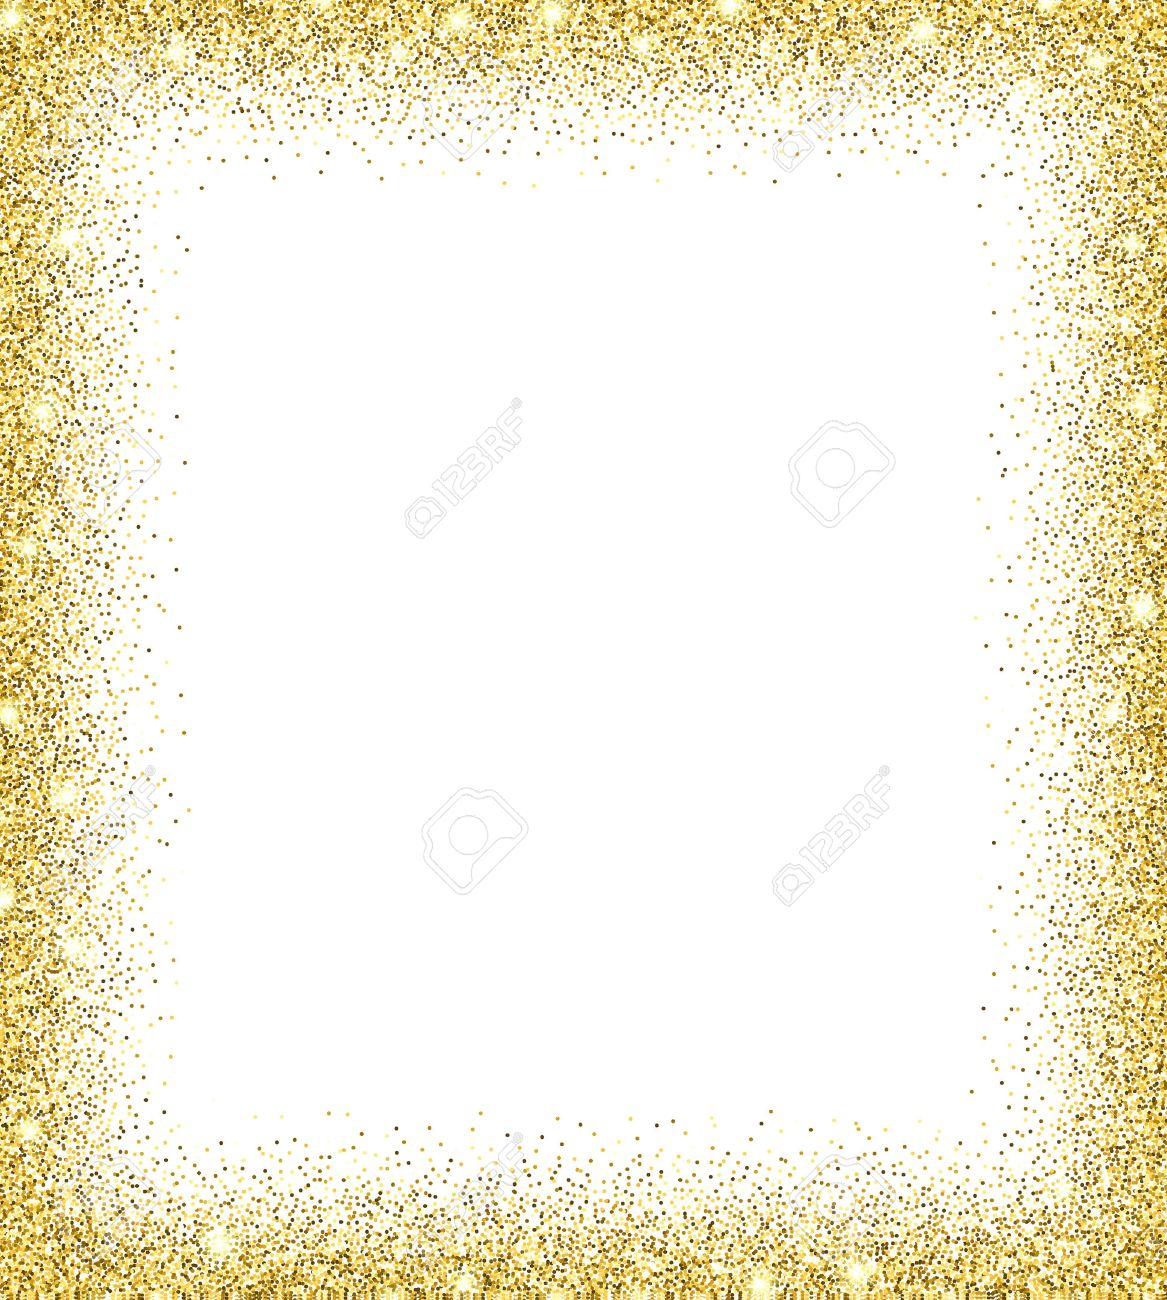 Gold glitter background gold sparkles on white background creative gold glitter background gold sparkles on white background creative invitation for party holiday stopboris Gallery